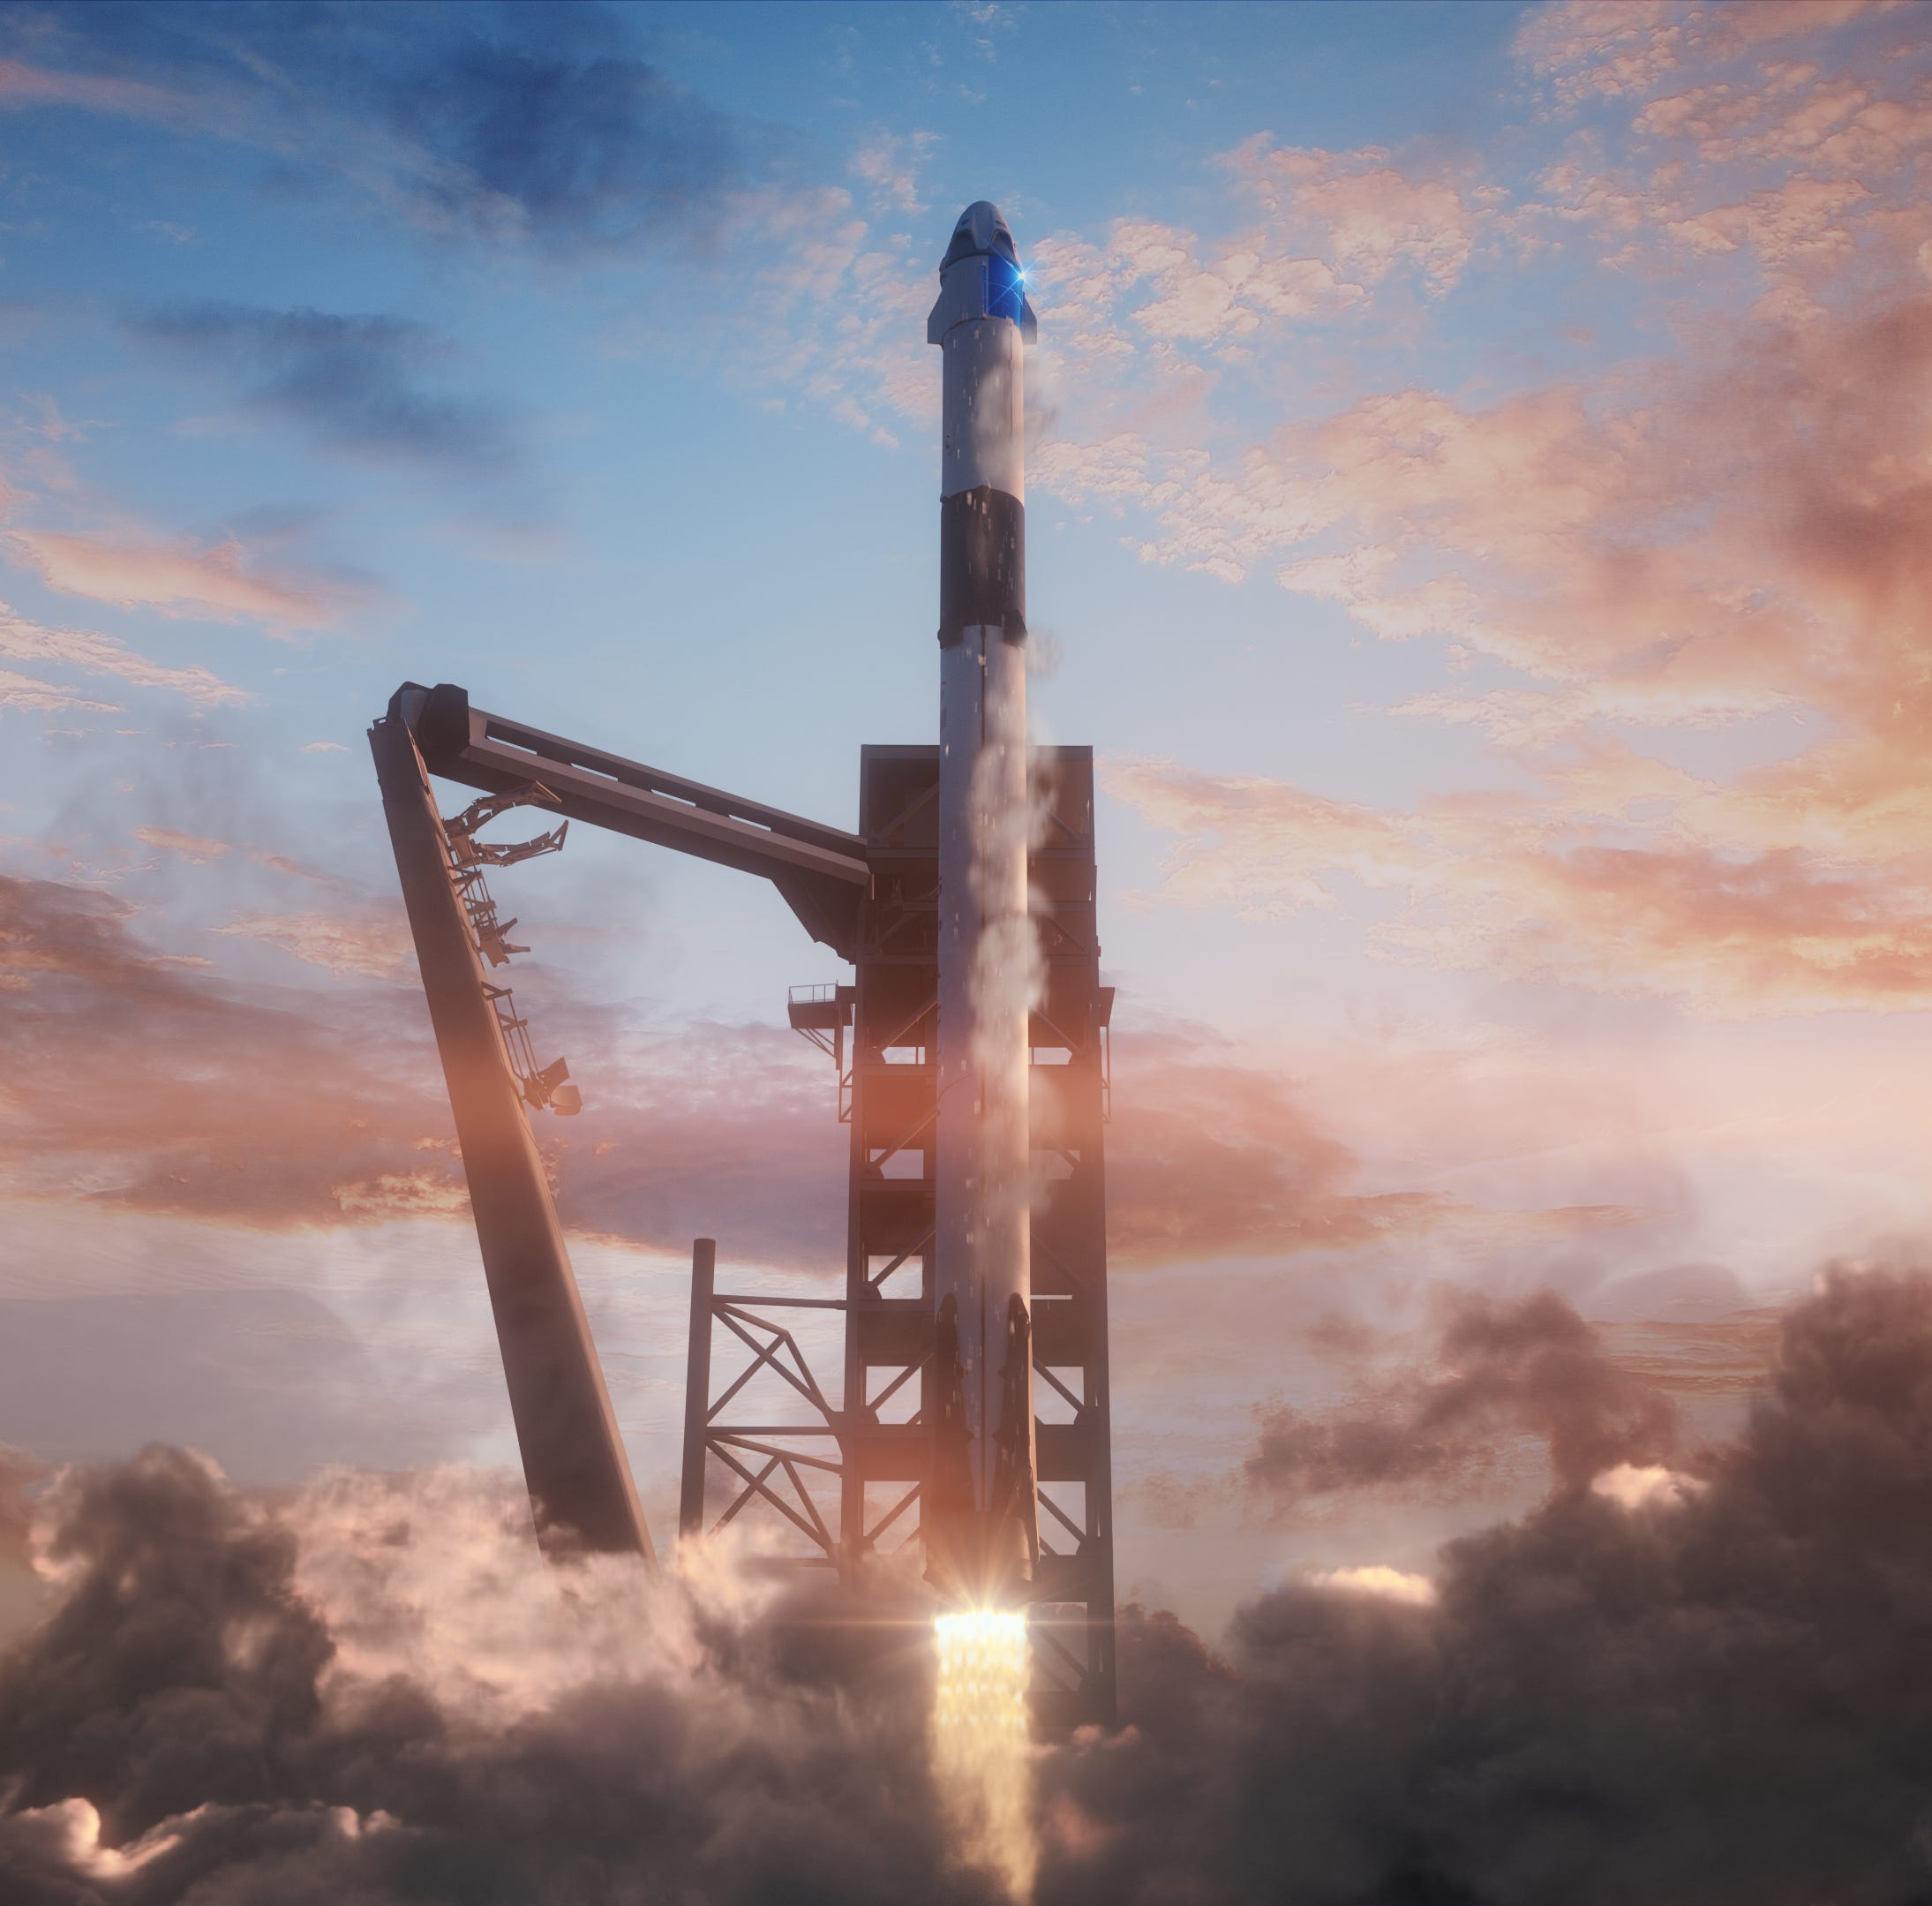 5 Cape Canaveral launches you absolutely cannot miss in 2019